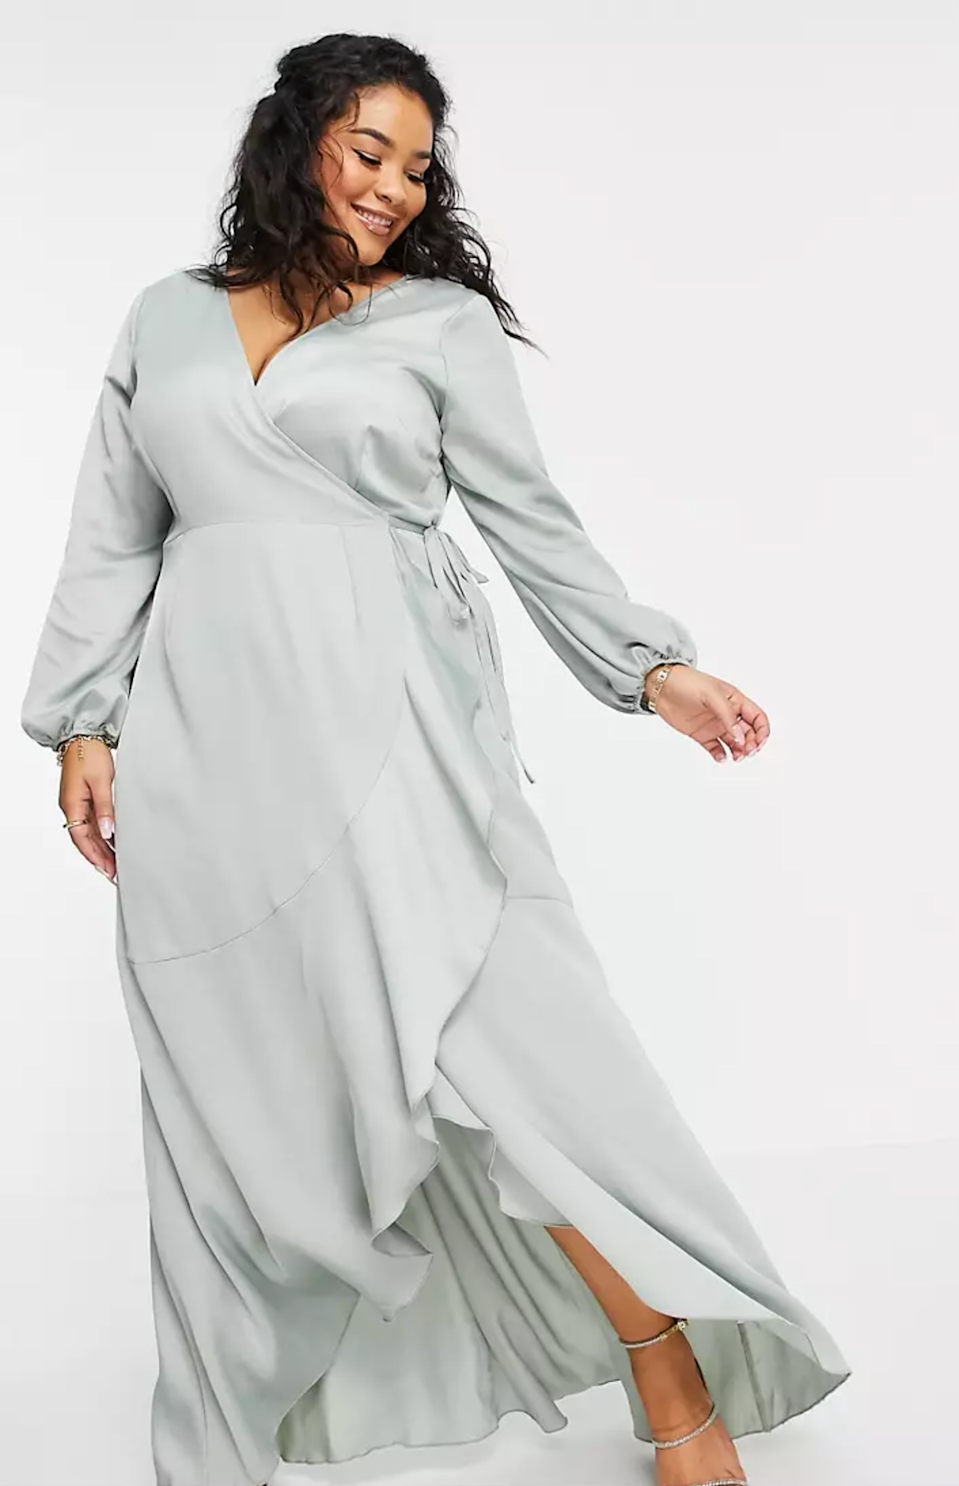 """This flowy ASOS number is both bridesmaid- and wedding-guest-appropriate—win-win! $87, ASOS. <a href=""""https://www.asos.com/us/little-mistress-plus/little-mistress-plus-wrap-tie-satin-midaxi-dress-in-sage-green/prd/22895875?colourwayid=60434660&SearchQuery=bridesmaid+dresses"""" rel=""""nofollow noopener"""" target=""""_blank"""" data-ylk=""""slk:Get it now!"""" class=""""link rapid-noclick-resp"""">Get it now!</a>"""